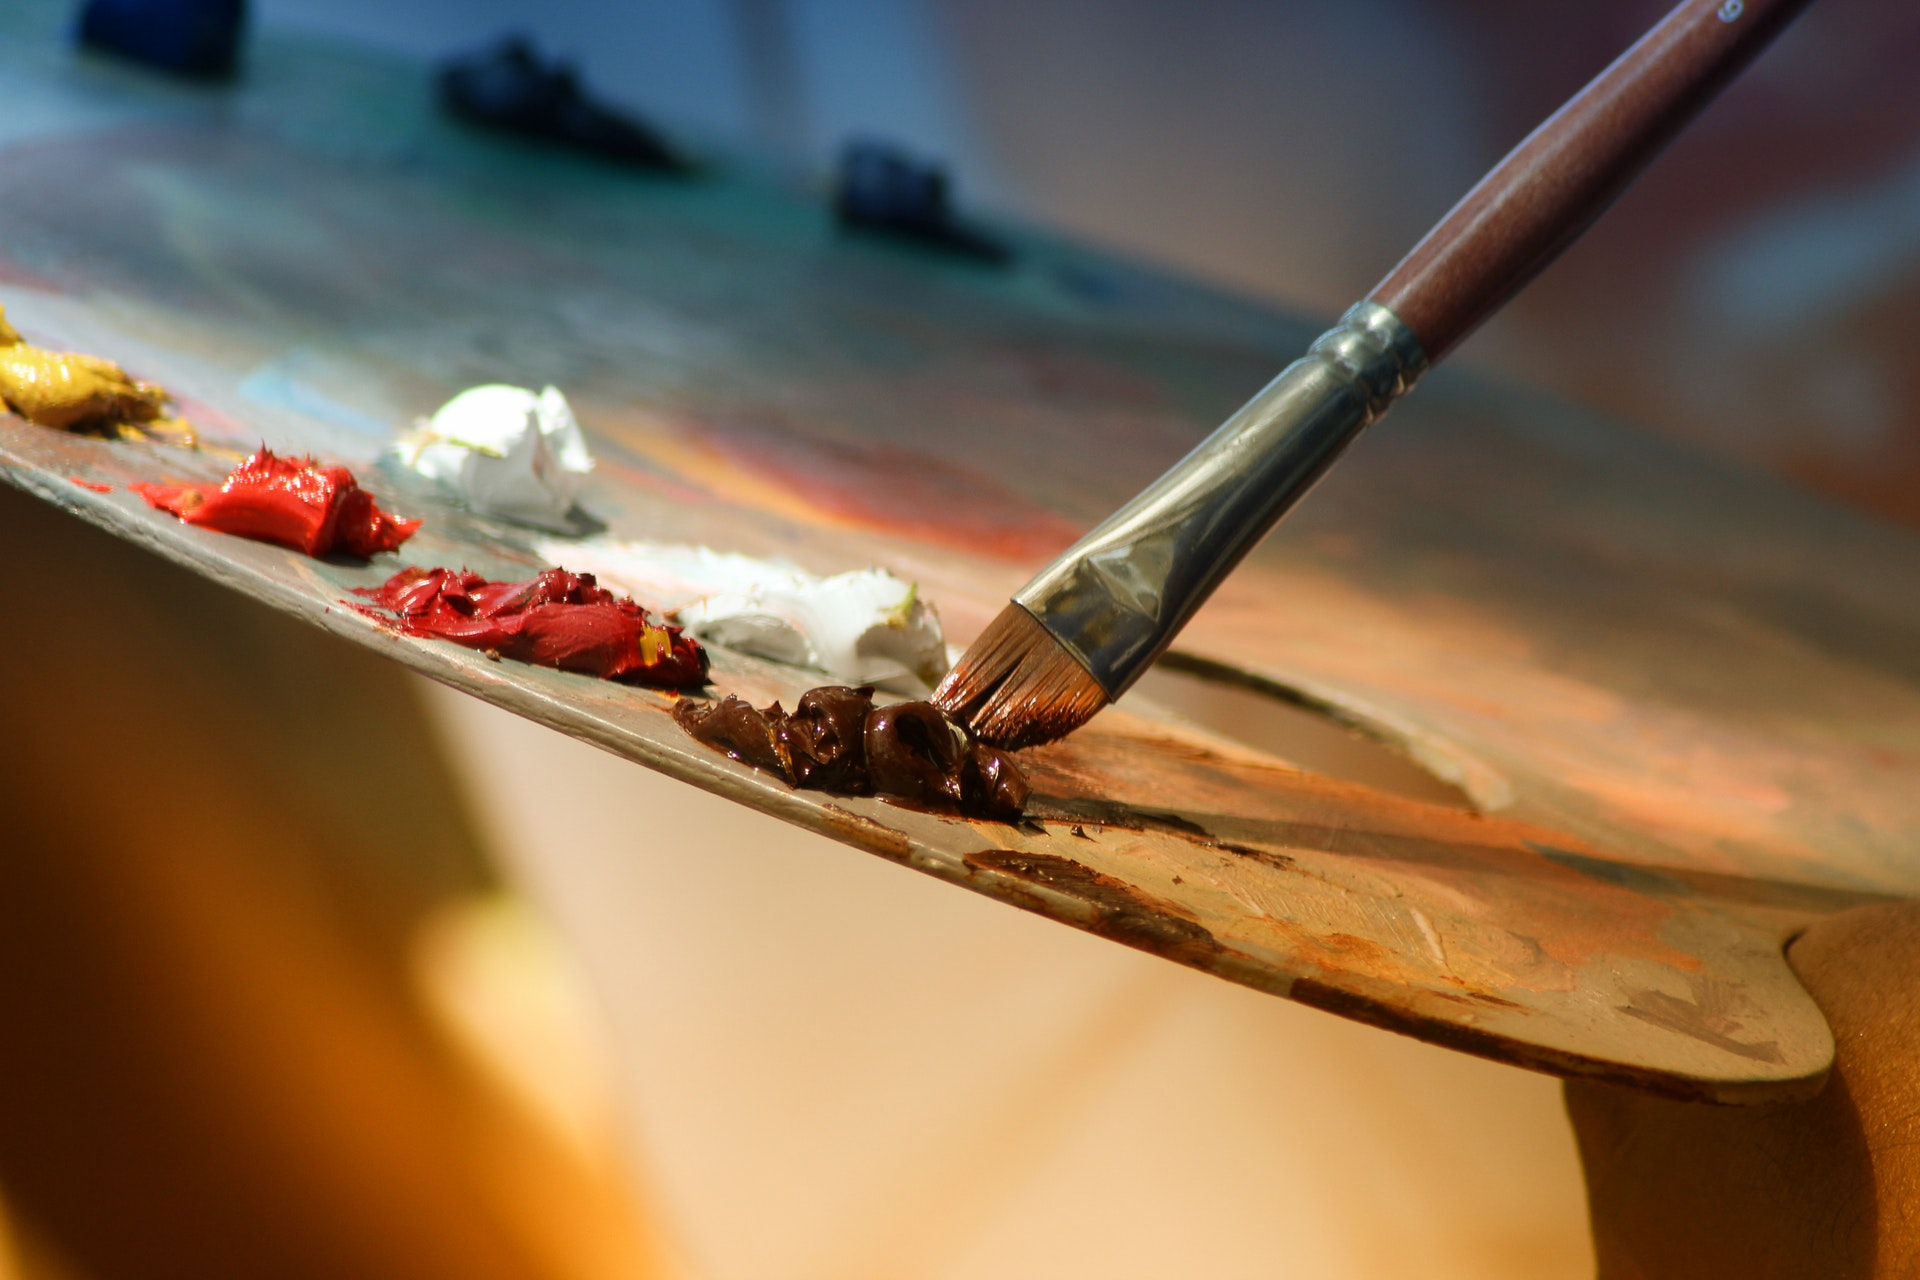 You Might Not Be Good at Your Hobby and That's Okay